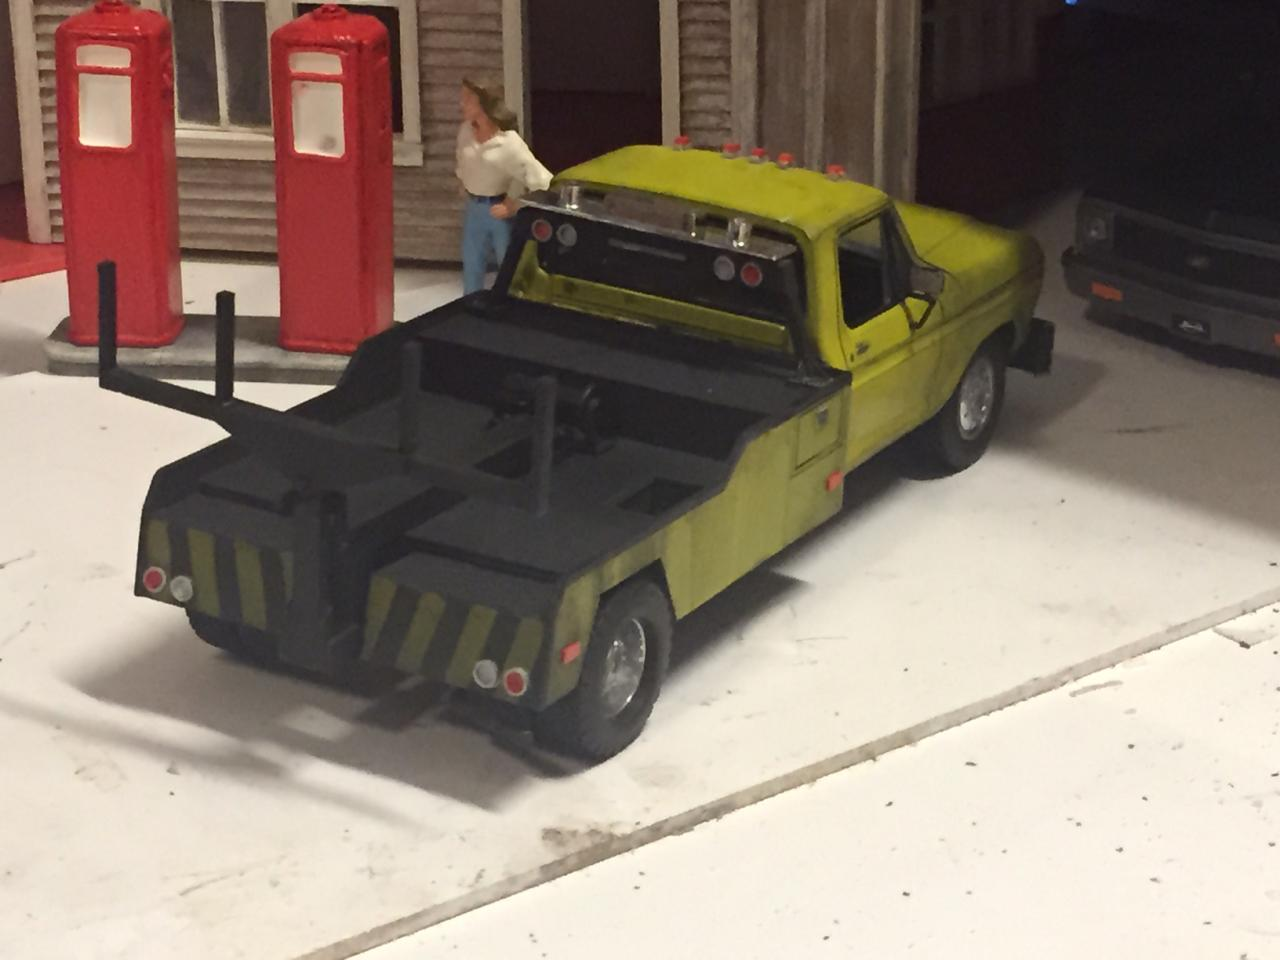 Cooter S Tow Truck Dukes Of Hazzard On The Workbench